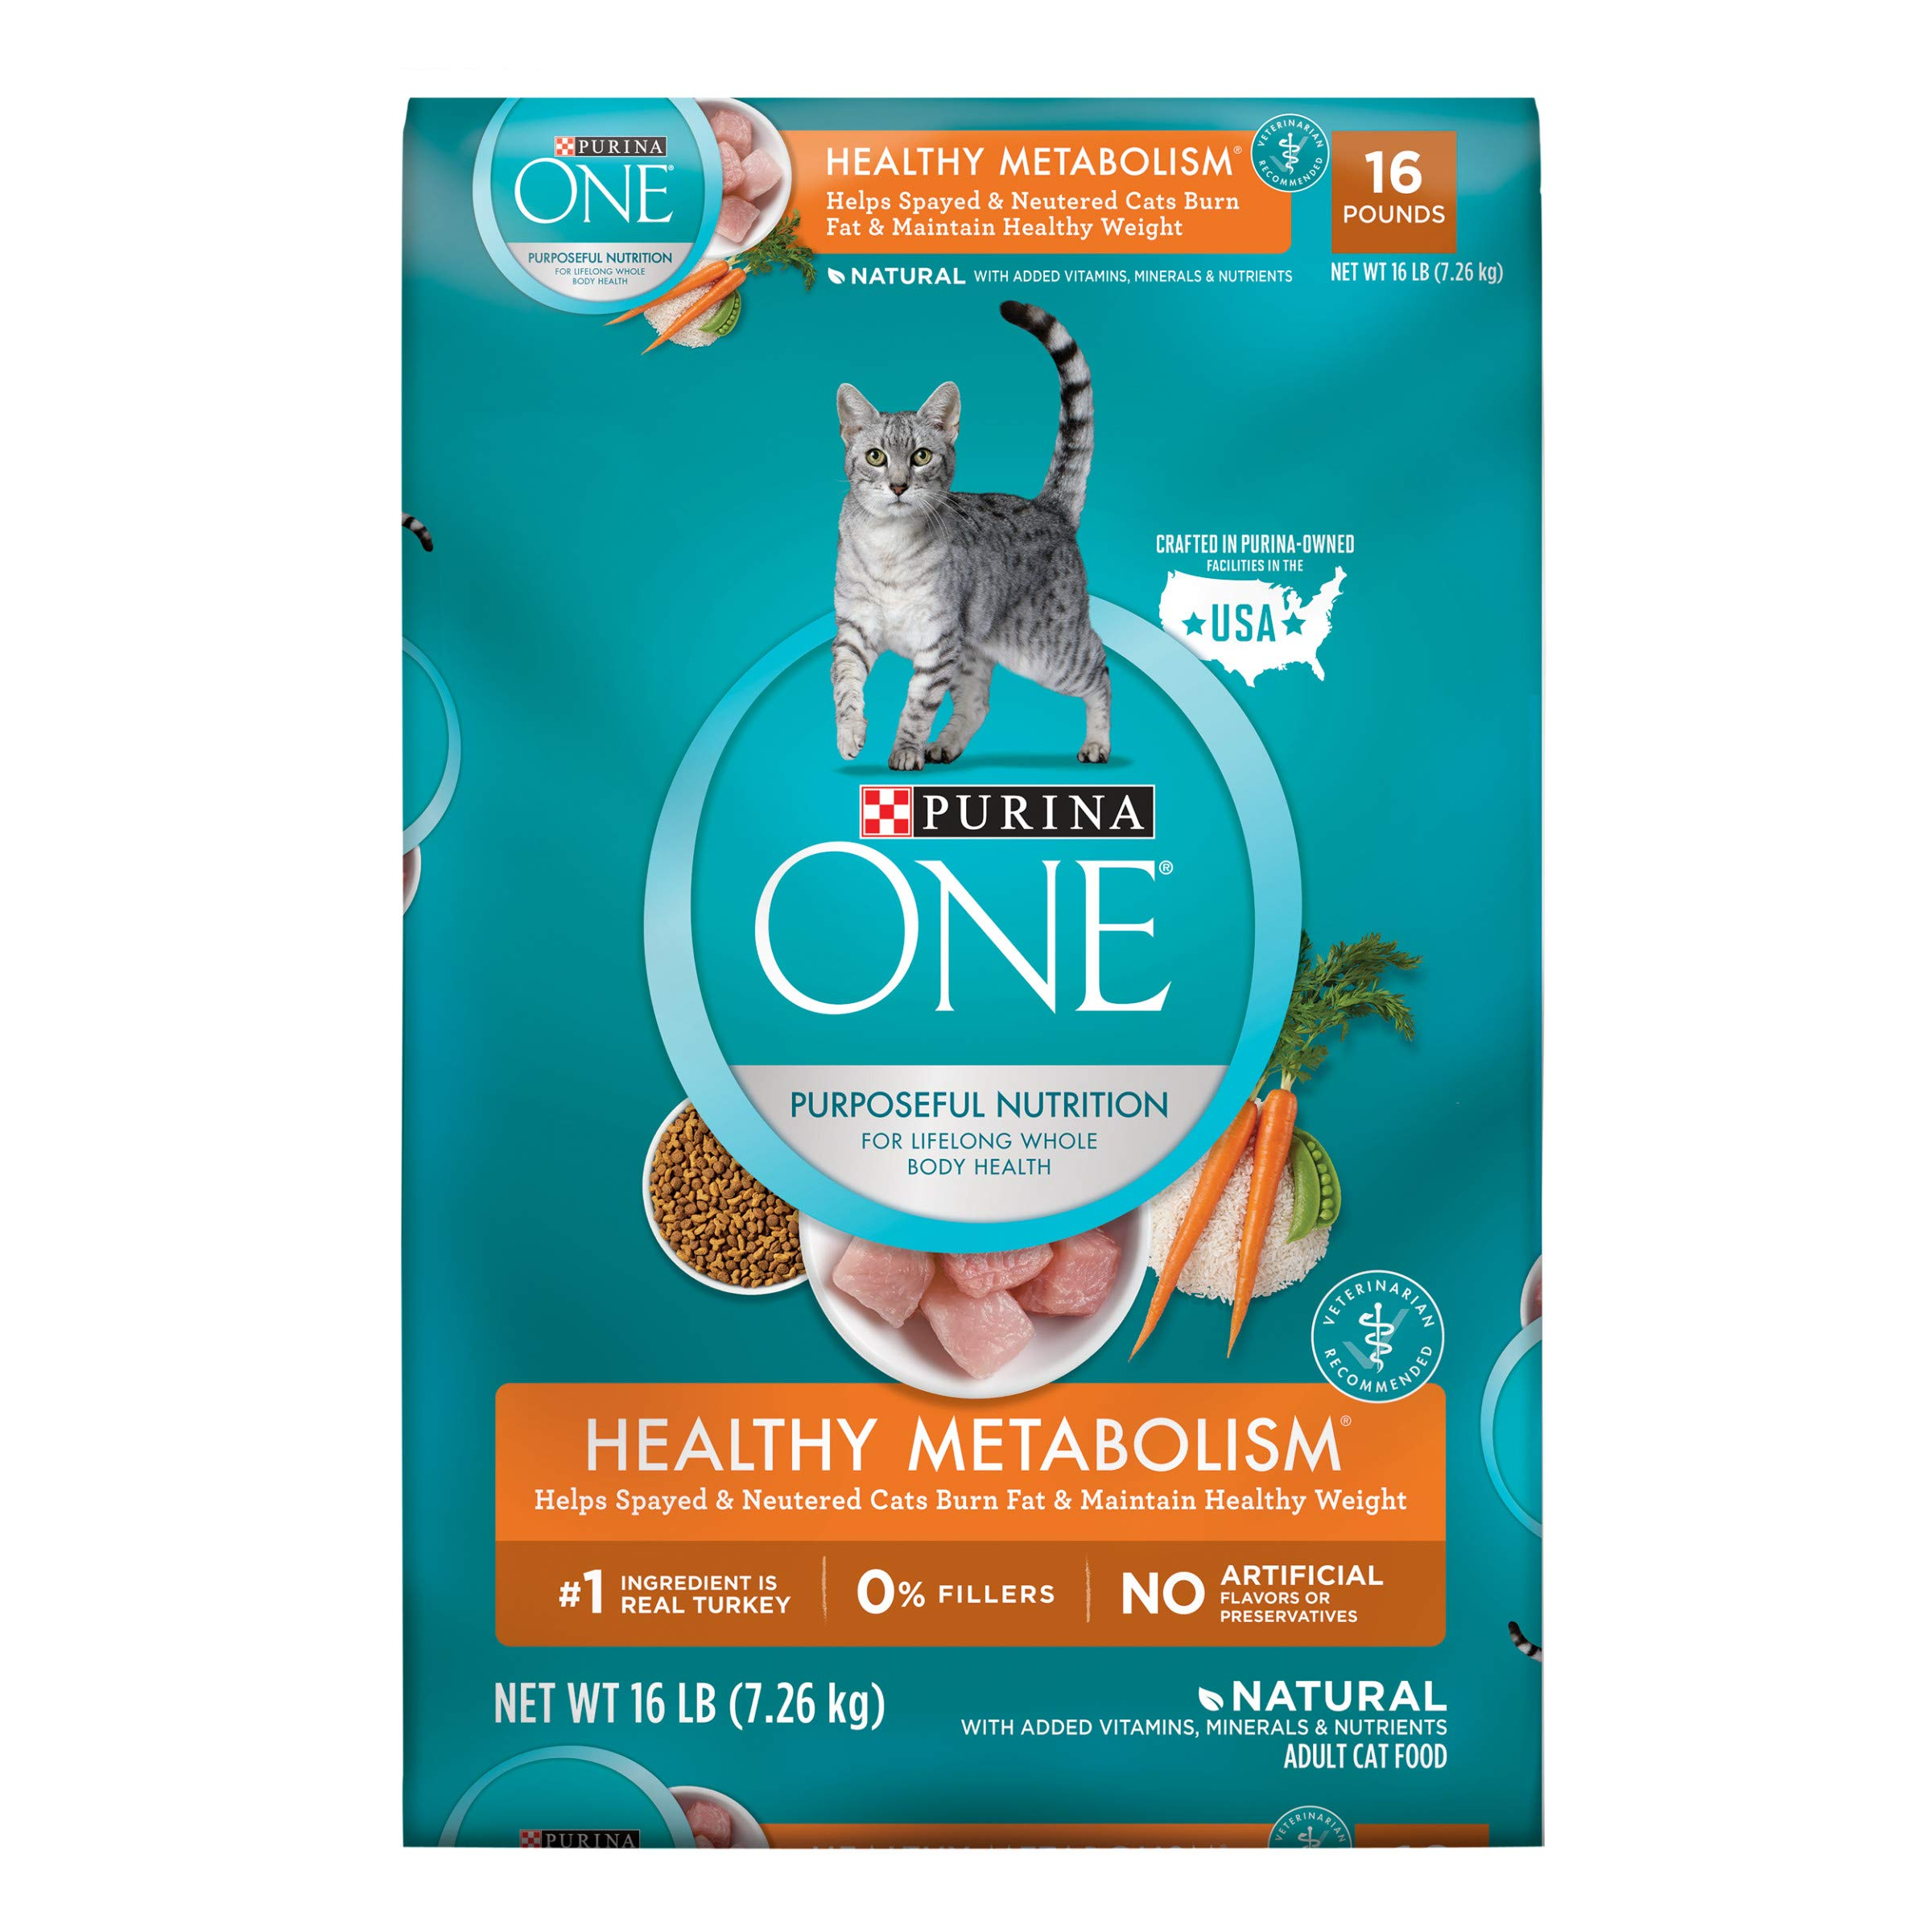 Purina ONE Weight Control, Natural Dry Cat Food, Healthy Metabolism - 16 lb. Bag by Purina ONE